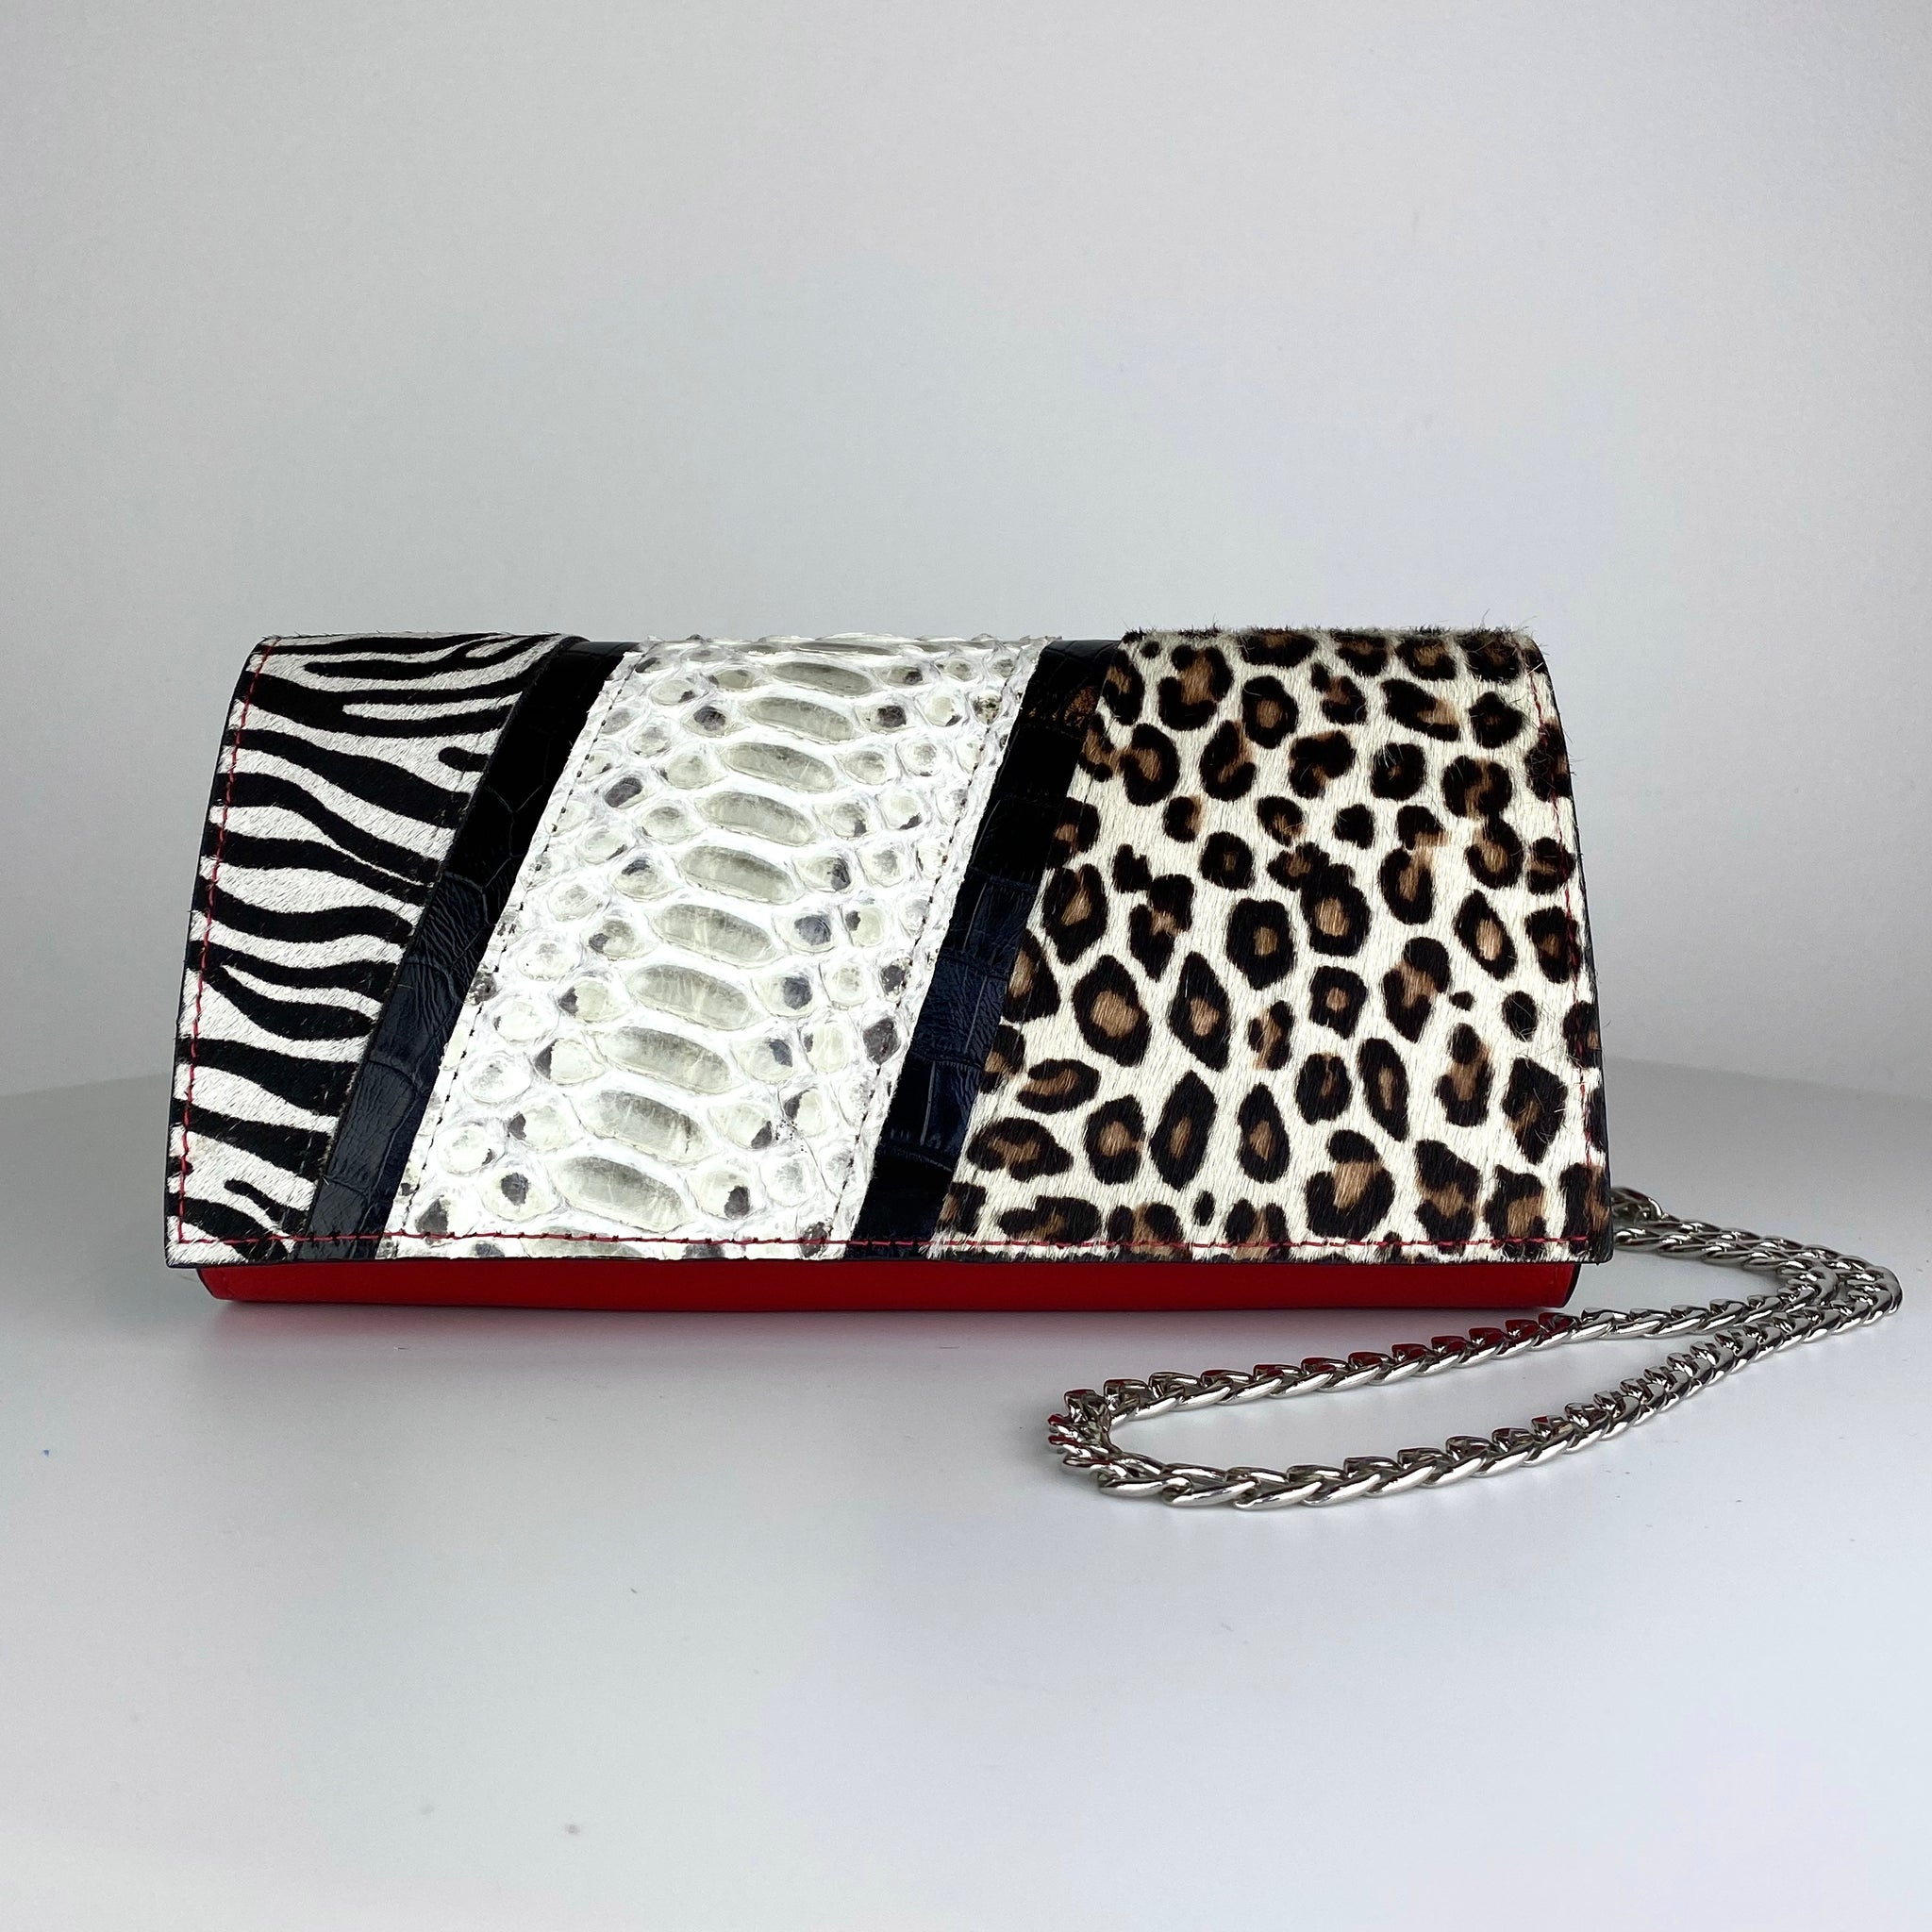 JUNGLE BAG, PATCHWORK ANIMAL-PRINT CALF HAIR, RED